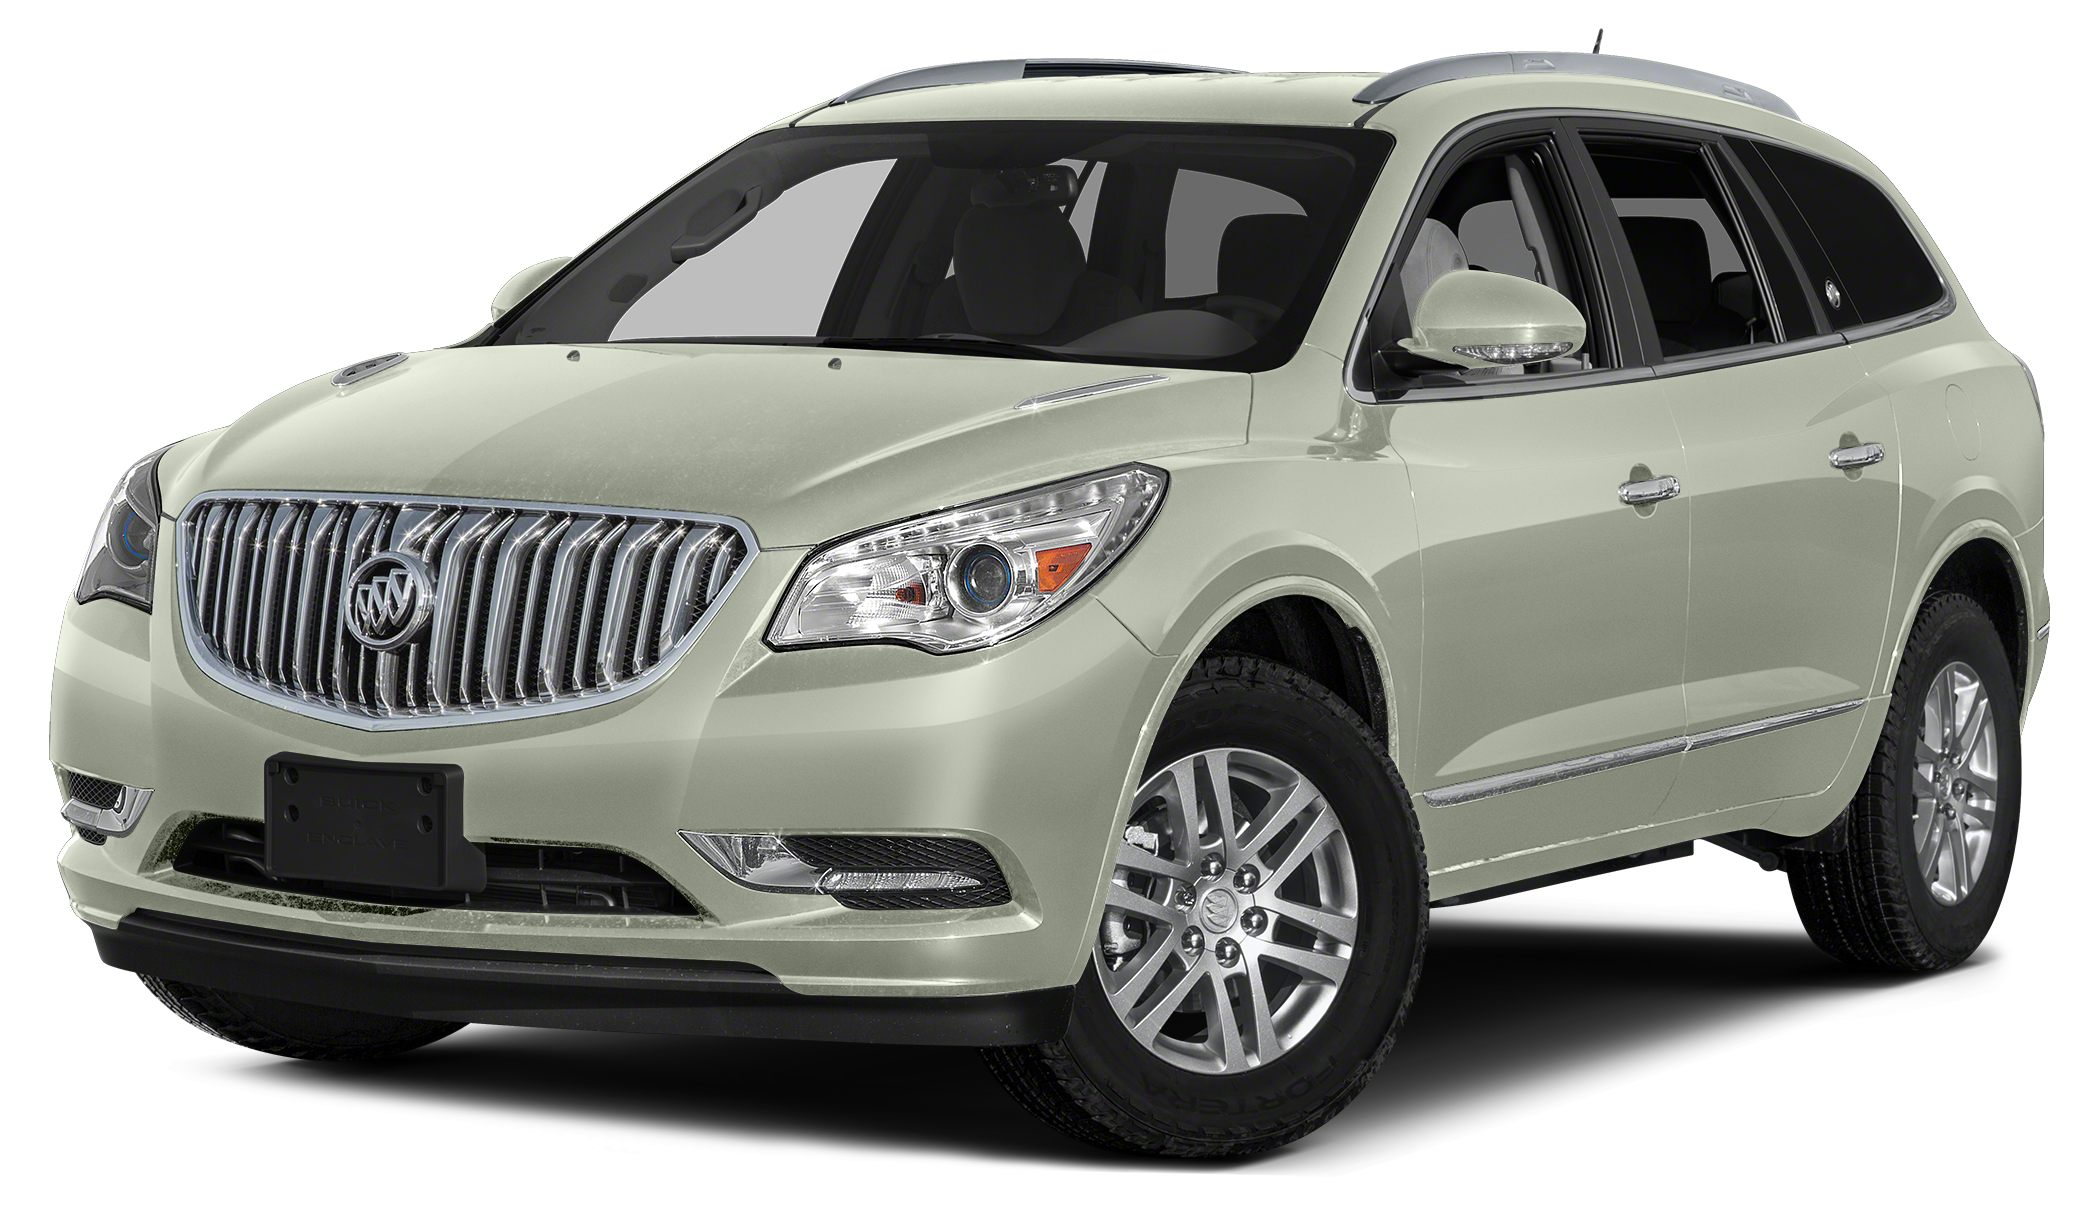 2017 Buick Enclave Leather Miles 3179Color White Frost Tricoat Stock SR137639 VIN 5GAKRBKD8H